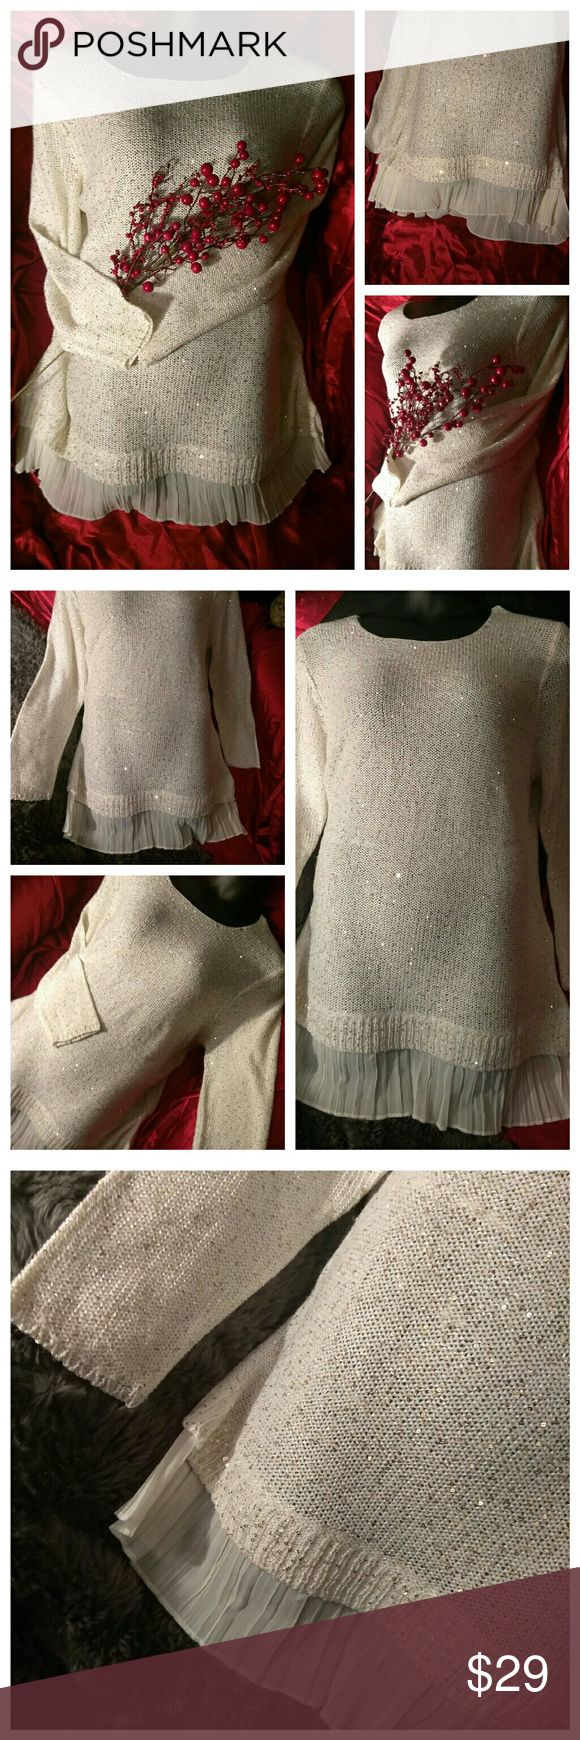 🎅🌲GORGEOUS🆕GLITTERY HOLIDAY SWEATER!🎄🎅 BNWT ⛄Jaclyn Smith Collection Size 3X ⛄Beautiful off white shade, filtered with gold sparkles and sheer lower extension...Simply breathtaking! ⛄Looks amazing with jeans & boots, or a skirt & heels! ⛄I also have a grey one available that I will be listing within 24 hours! Jaclyn Smith Sweaters Crew & Scoop Necks